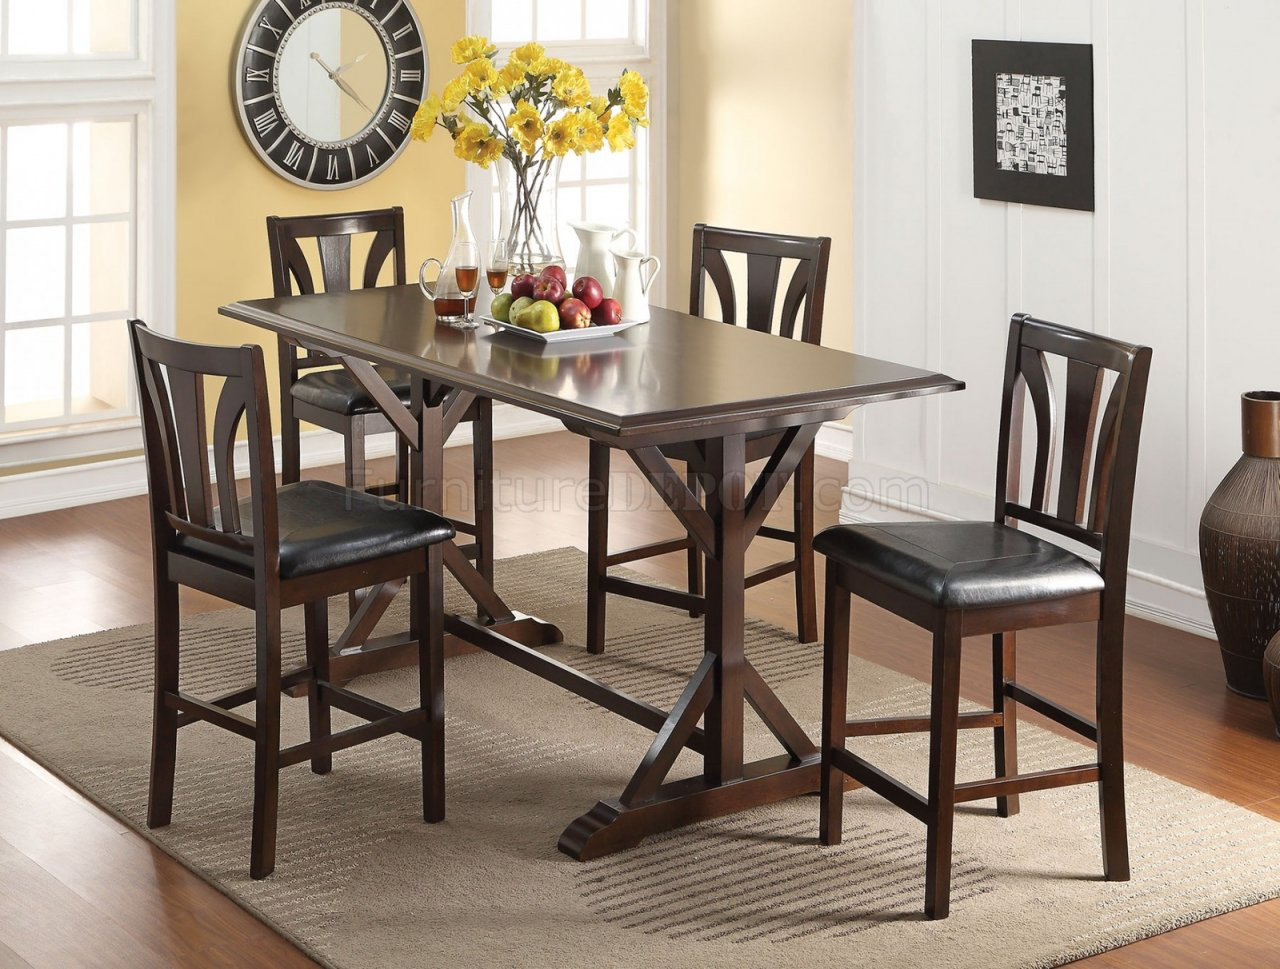 72620 Counter Height Dining Table 5pc Set By Acme W Options